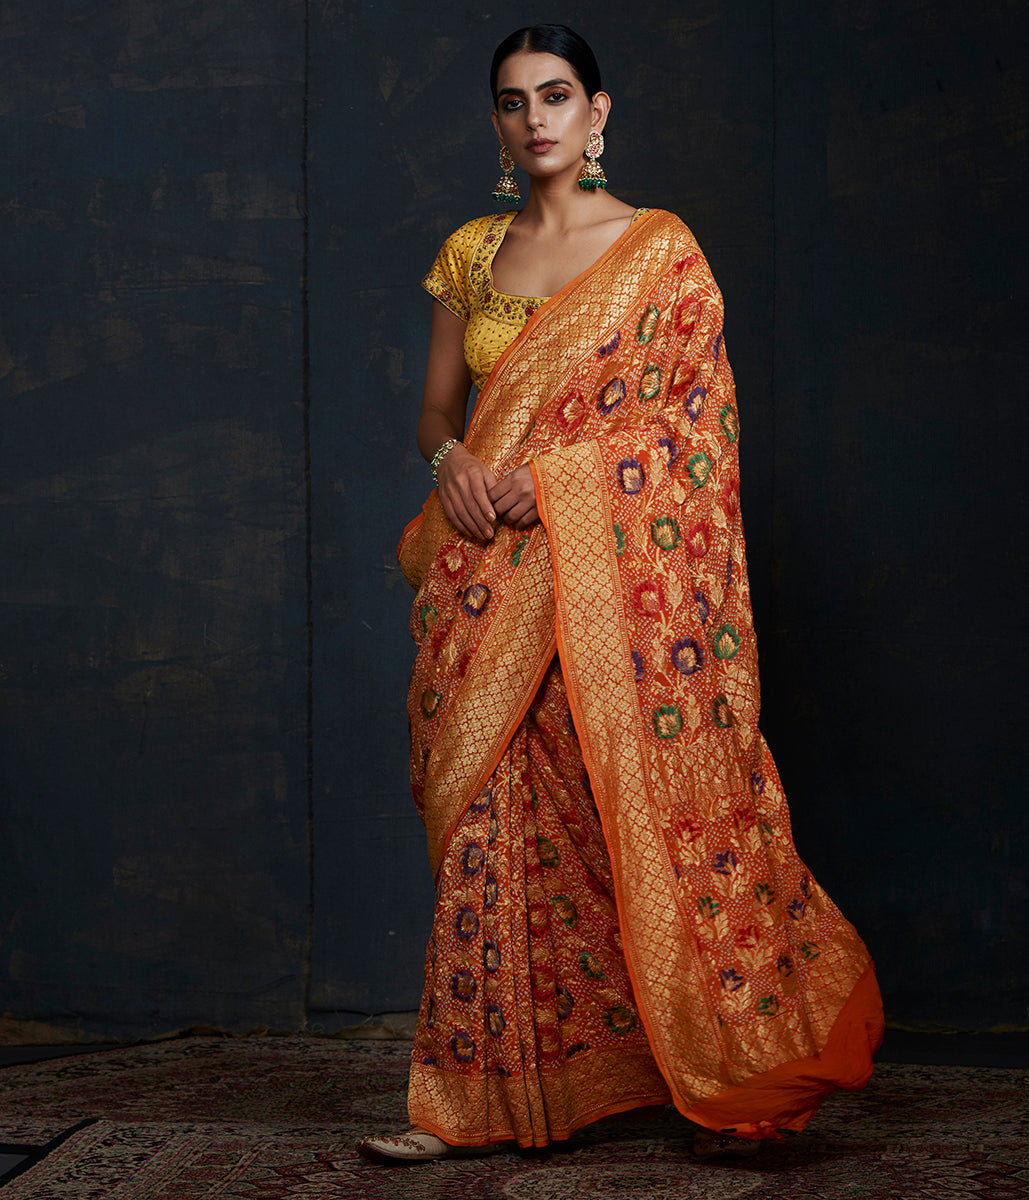 Handwoven Banarasi Bandhej Saree in orange color with meenakari jaal